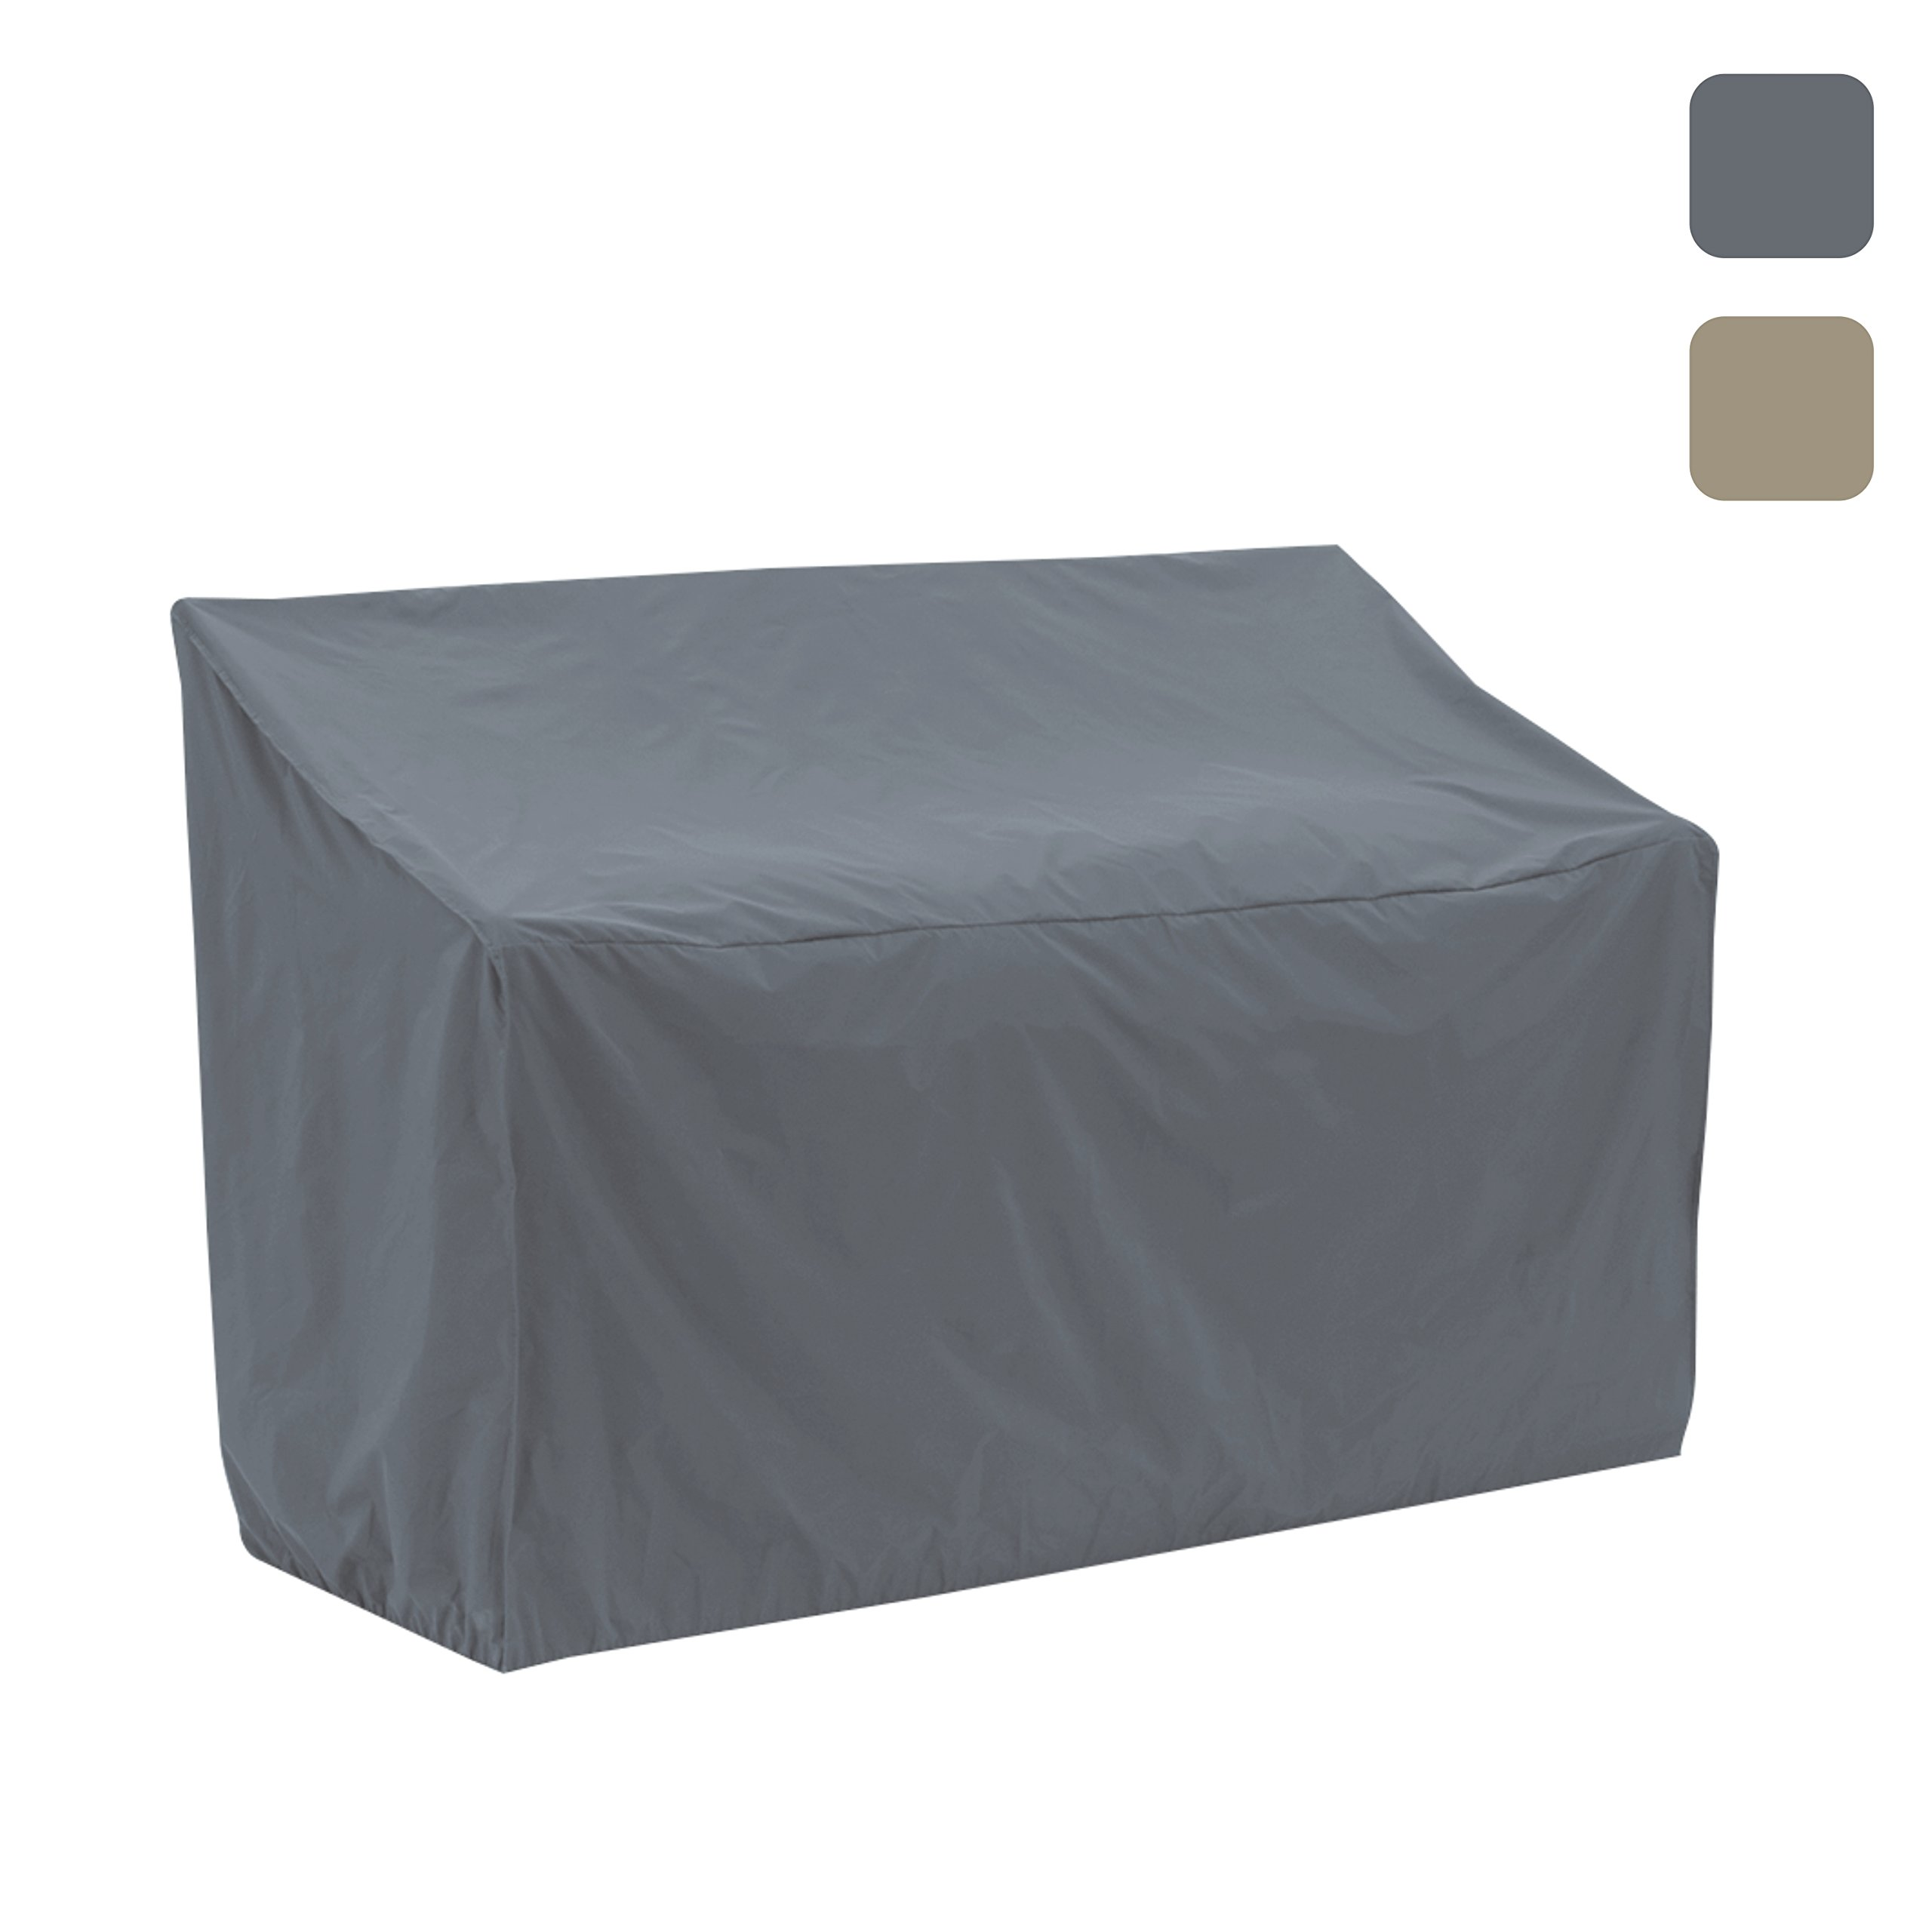 Patio Bench Cover Waterproof, Air Vents, 100% UV-Resistant, 1000 D Both Side PVC Coated, Outdoor Furniture Bench Covers with Drawstring for Snug fit to Withstand even in Winds & Storms,Grey